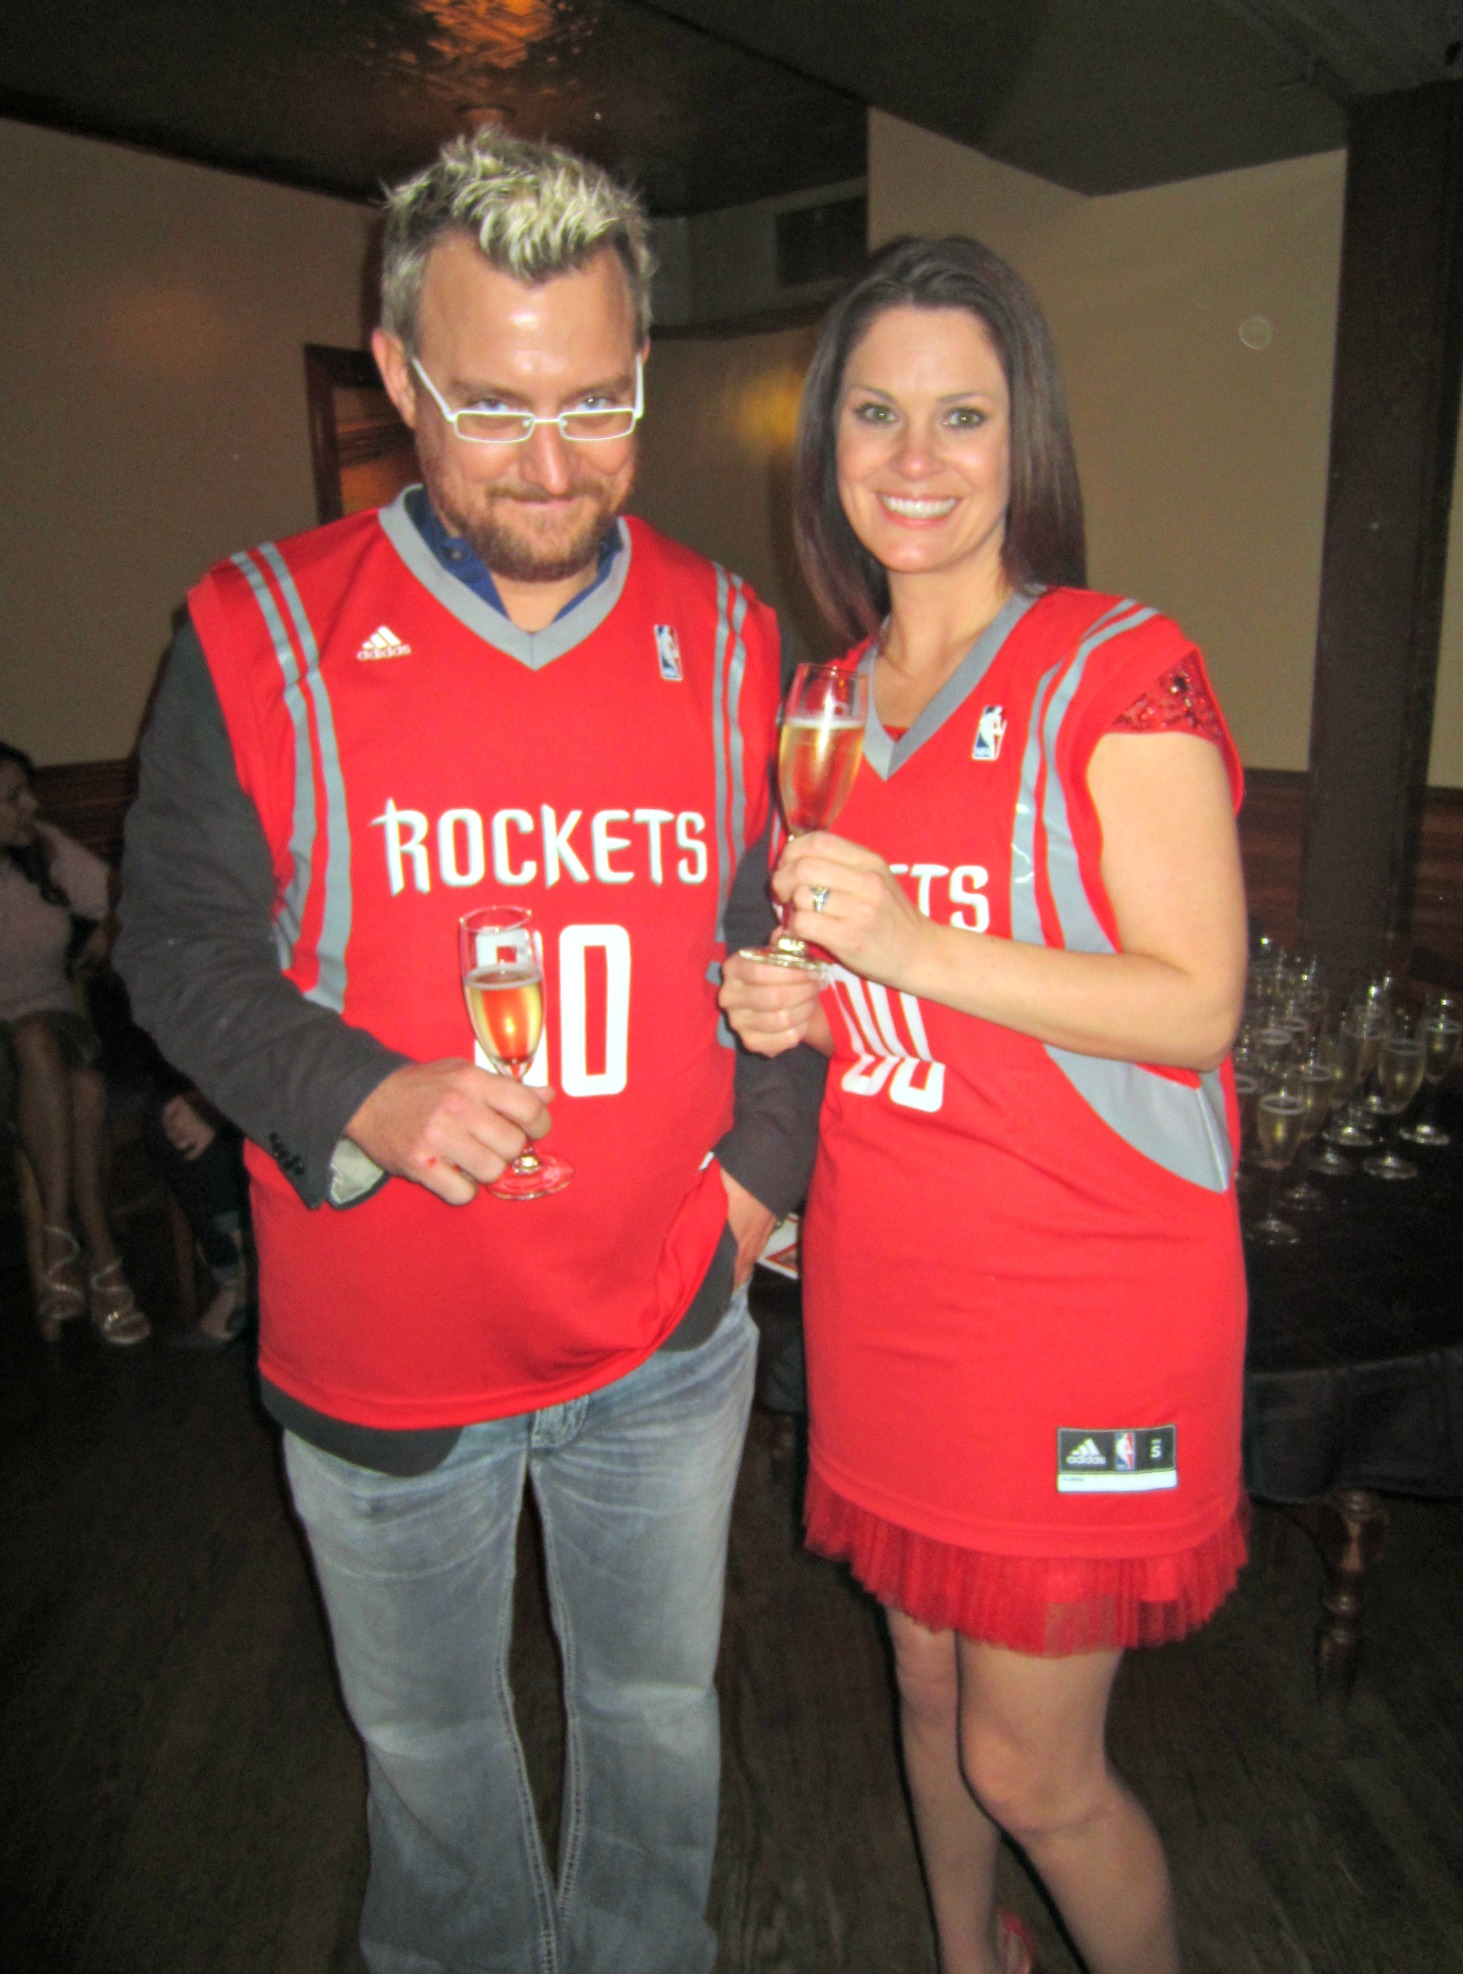 bride and groom in rockets jerseys